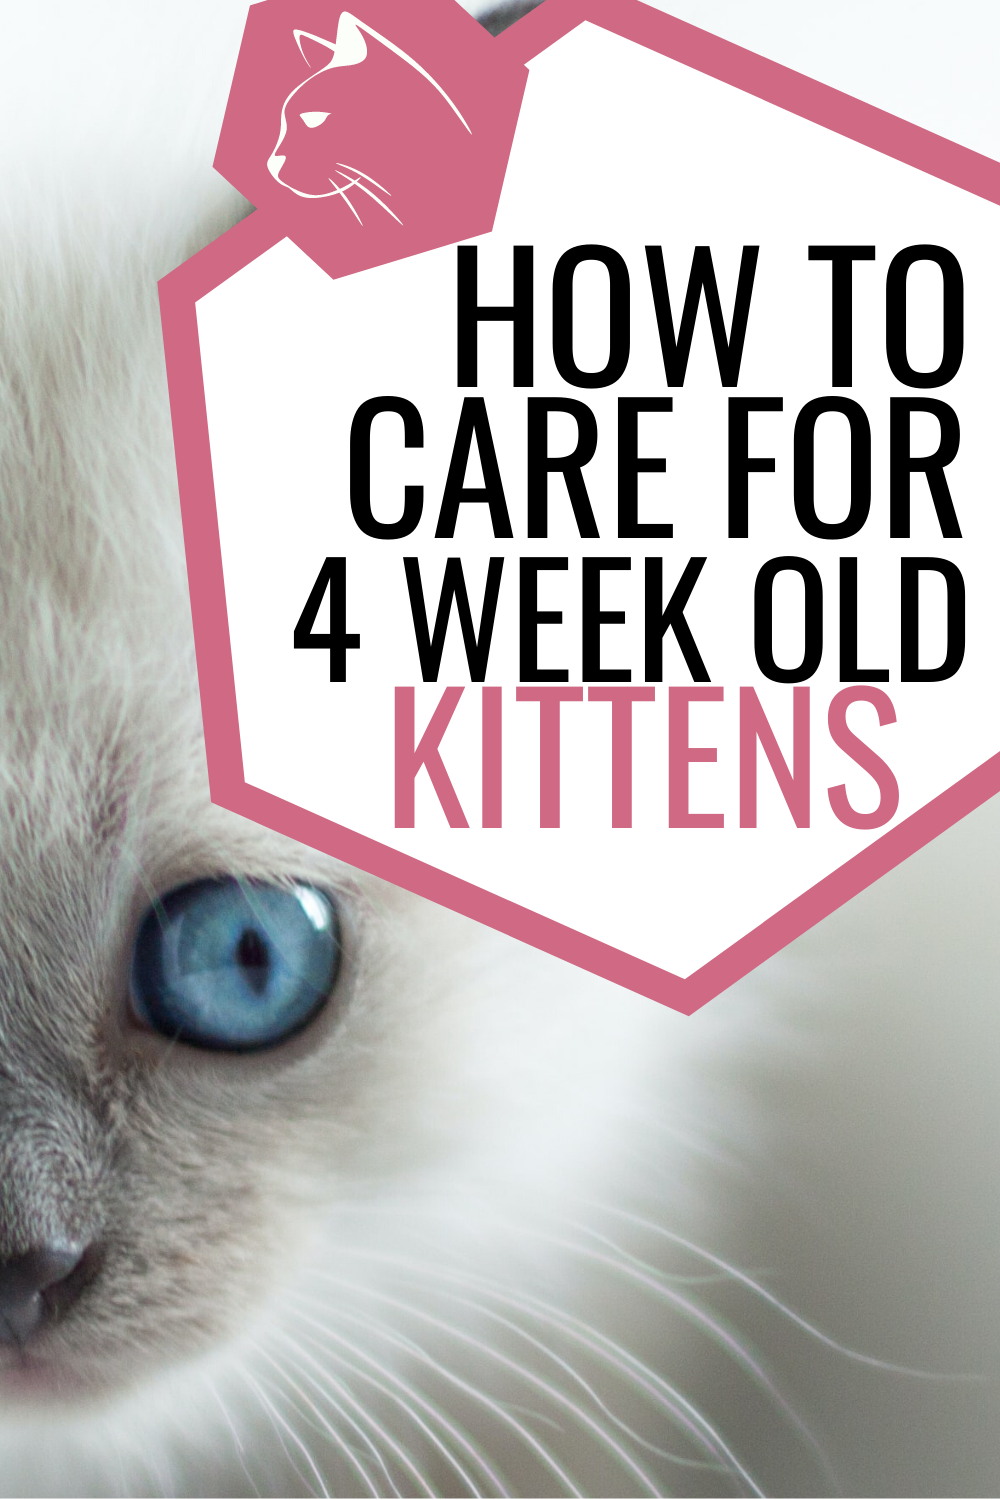 The Simple Guide To Caring For Four Week Old Kittens Live Long And Pawspurr In 2020 6 Week Old Kitten Kitten Care Newborn Kittens